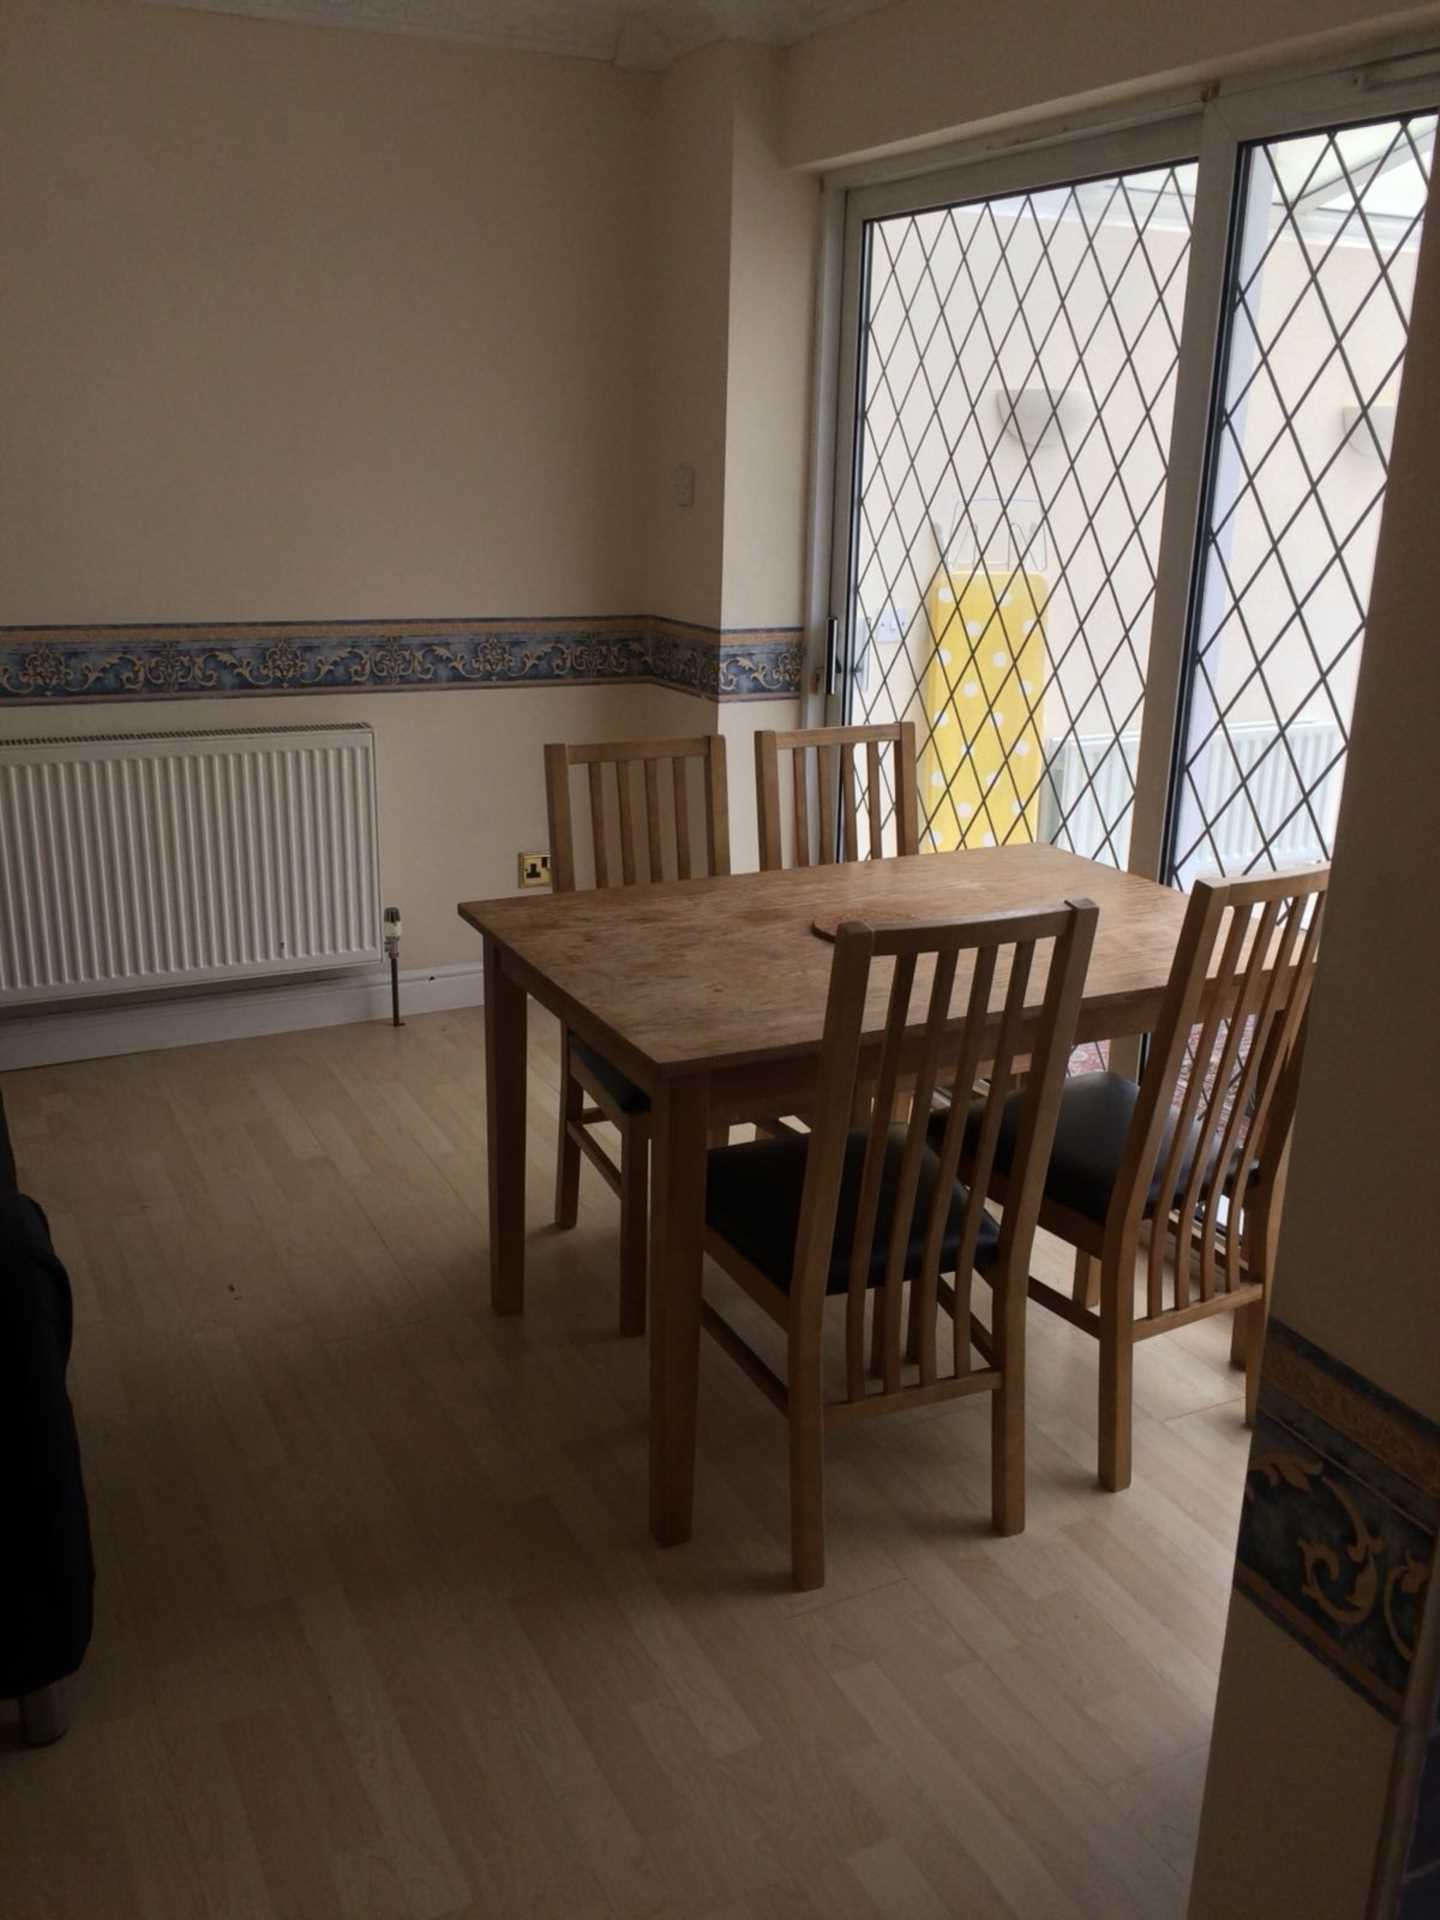 Room 2, Queensland Avenue - 5 bedroom 2 bathroom student home fully furnished, WIFI & bills included - NO FEES, Image 4